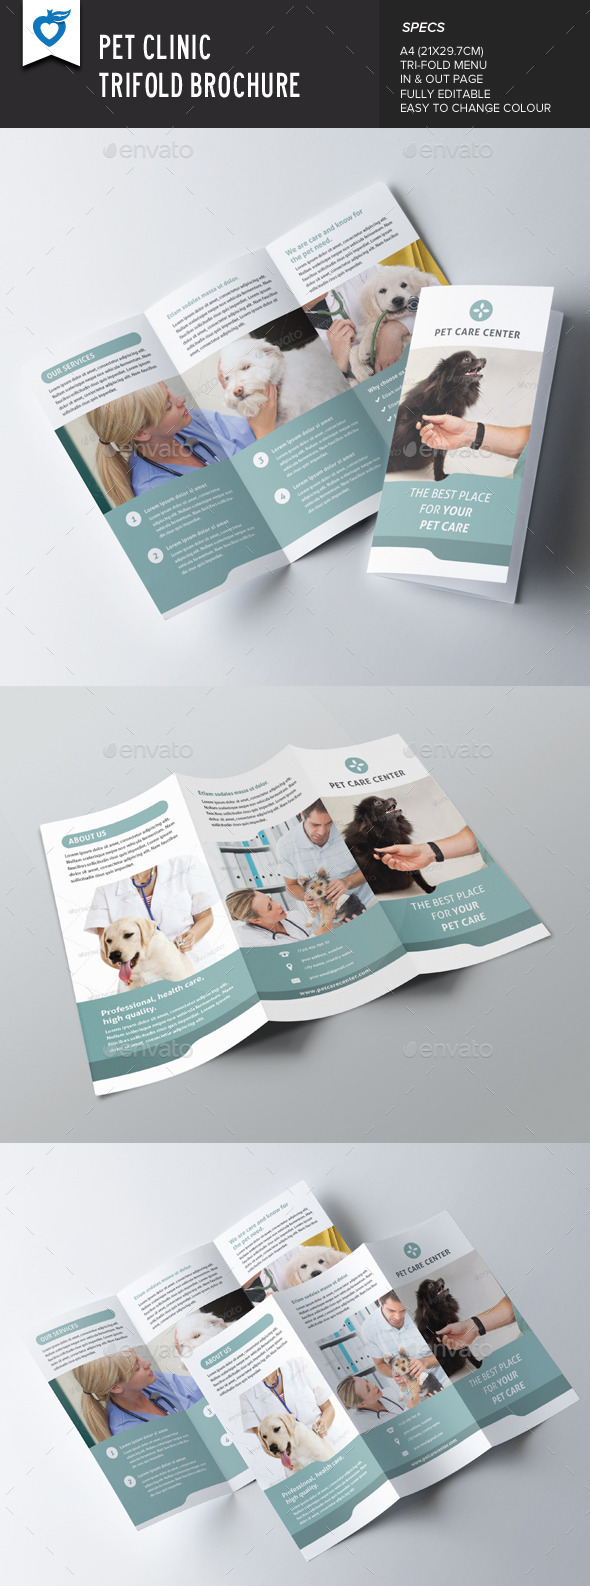 Pet Clinic Trifold Brochure - Corporate Brochures